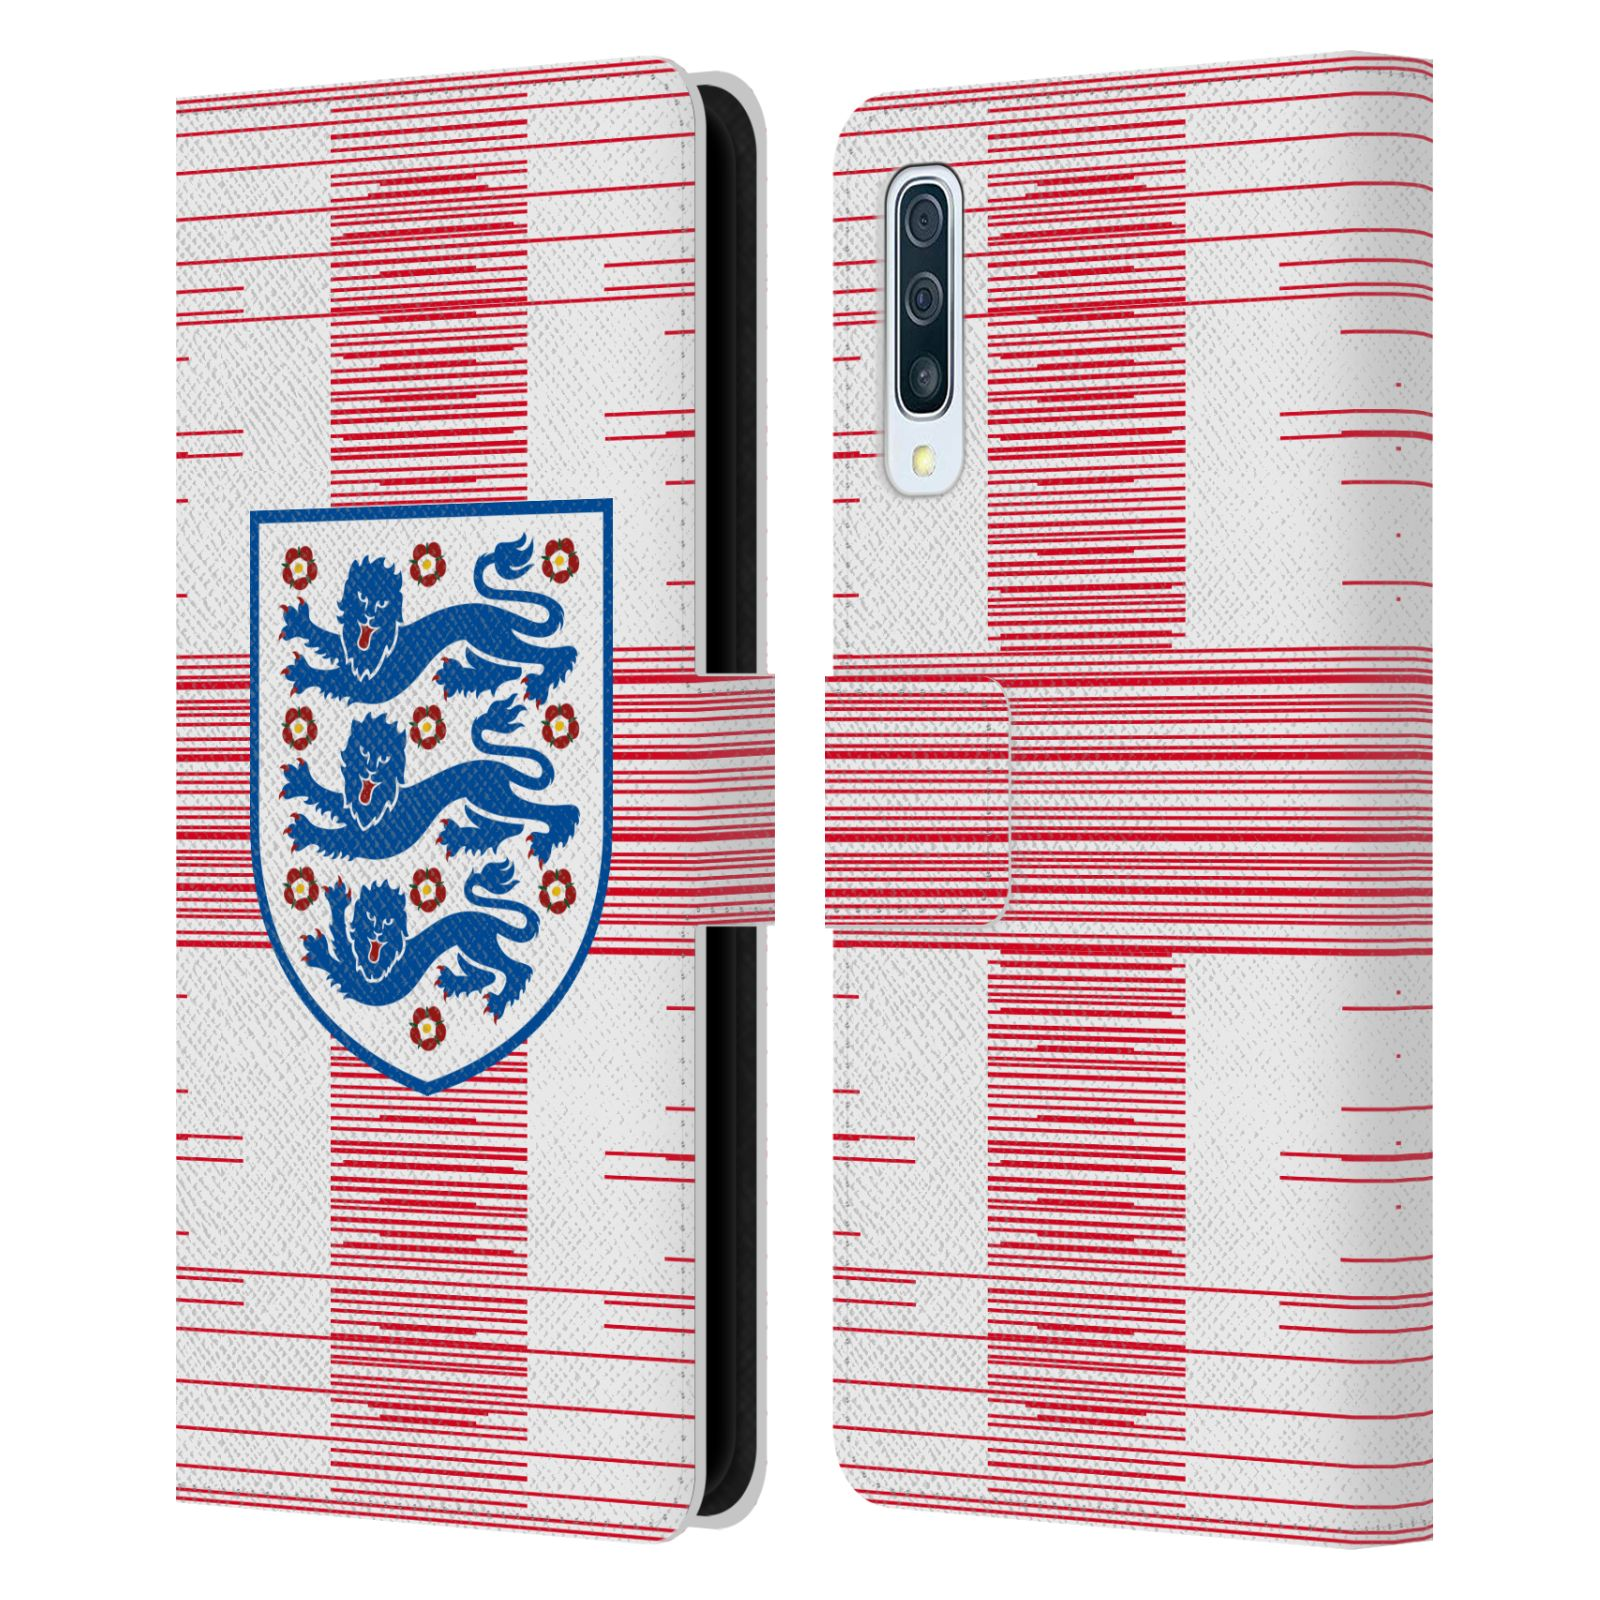 Official England National Football Team 2018/19 Crest Flag 2 Leather Book Wallet Case For Samsung Galaxy A50s (2019)